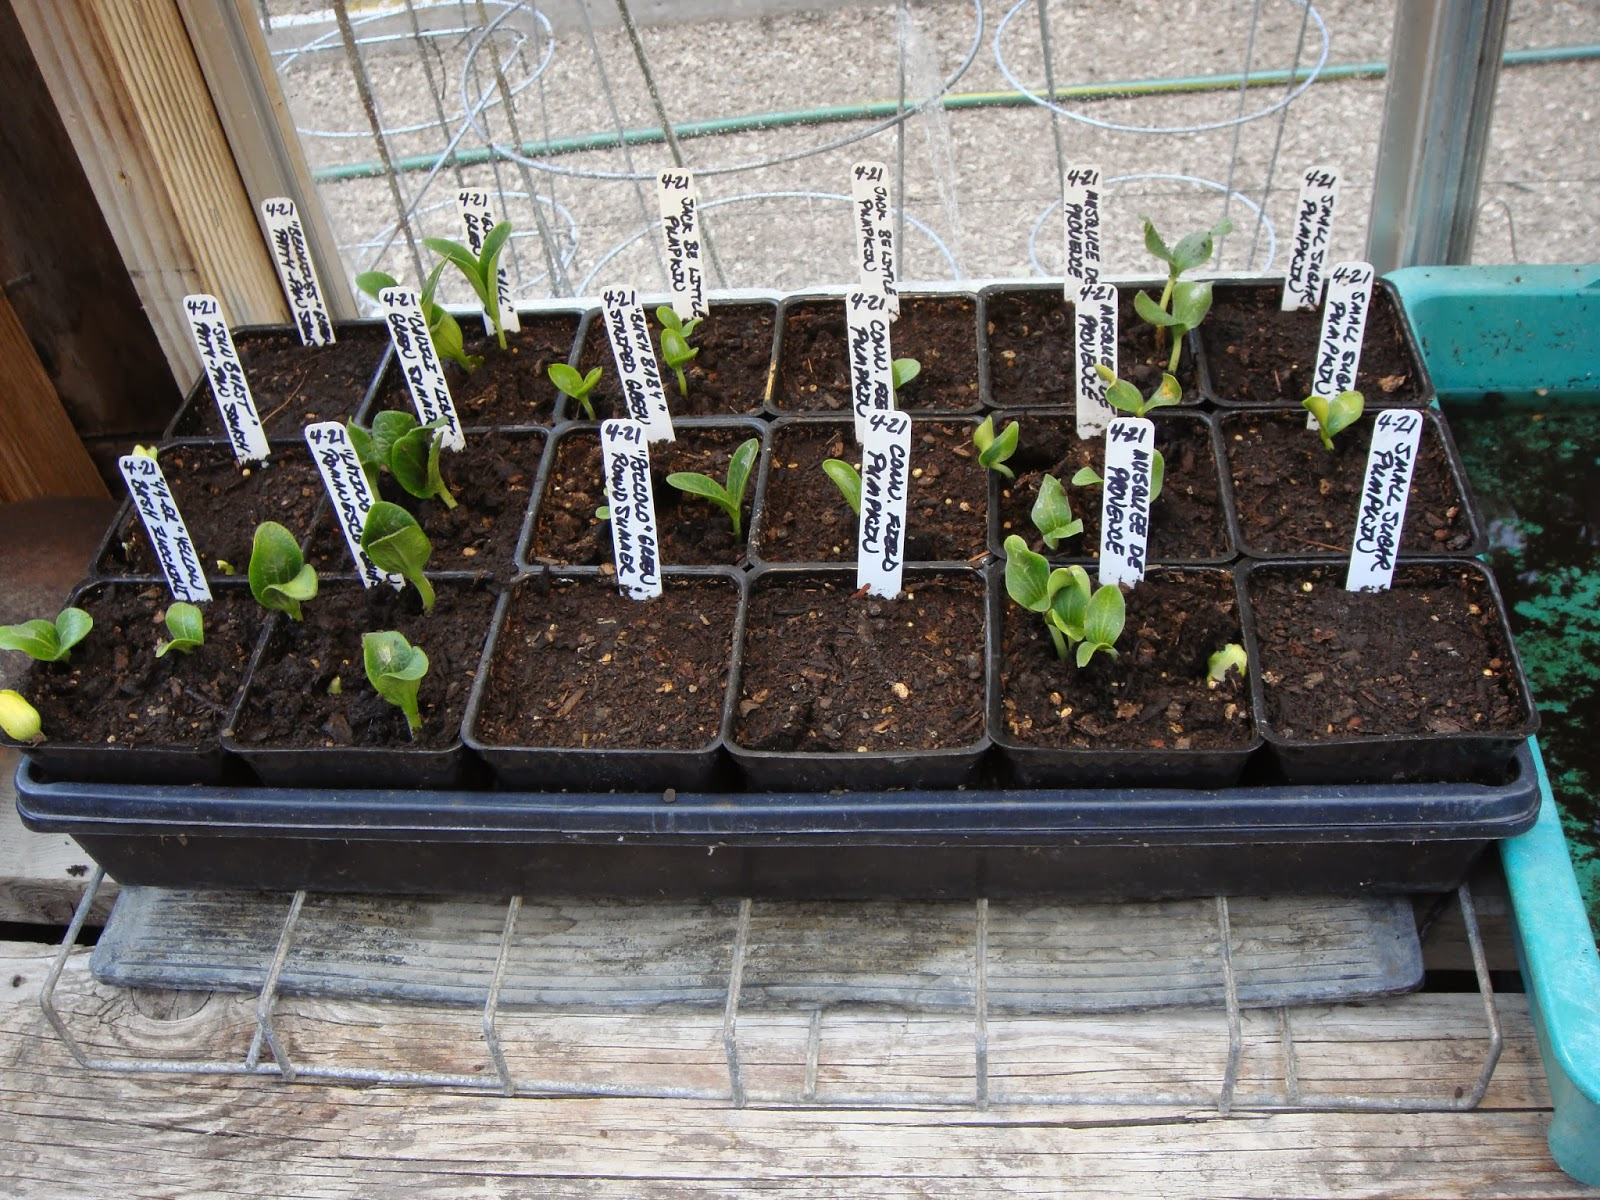 Squash Seedlings Sprouting in The Garden Oracle's Greenhouse.  The Squash Plants in This Photo are About One Week Old from the Date of Sowing, and Have Been Sown with Four Seeds in Each Three Inch Pot (one in Each Quadrant) to Conserve Space on the Heat Mat.  After a Few Weeks They Will be Able to be Planted Out in Hills as a Cluster (Recommended), or They can be Carefully Divided Up in Another Week or Two into Individual Pots and Grown on For Planting out Separately. Use Caution as Plants in the Cucurbit Family (Zuchinni, Summer Squash, Winter Squash, Cucumbers, Pumpkins and Gourds) are a bit Sensitive to Root Damage and can Also get Root Bound Quickly in Small Pots.  Set Plants a Bit Deeper in the Ground than in The Pots to Encourage a Larger Root System when Planting Out.  Make Sure to Check Out the Large Assortment of Squash Seeds Available Through the Vegetable Seeds Tab at the Top of this Site.